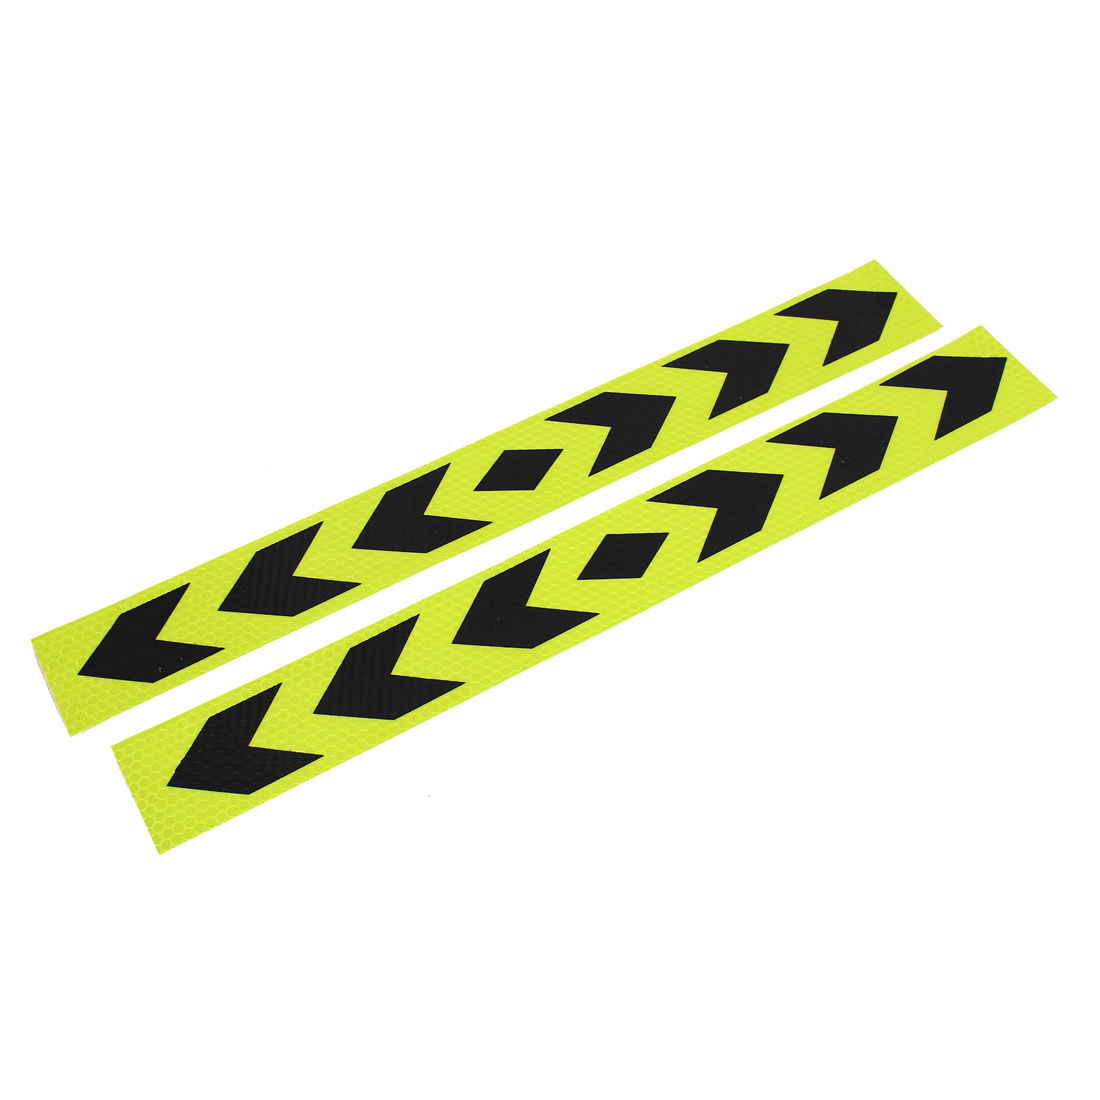 2pcs 40cm x 5cm Arrows Print Self Adhesive Car Auto Safety Reflective Stickers Decal Yellow Black